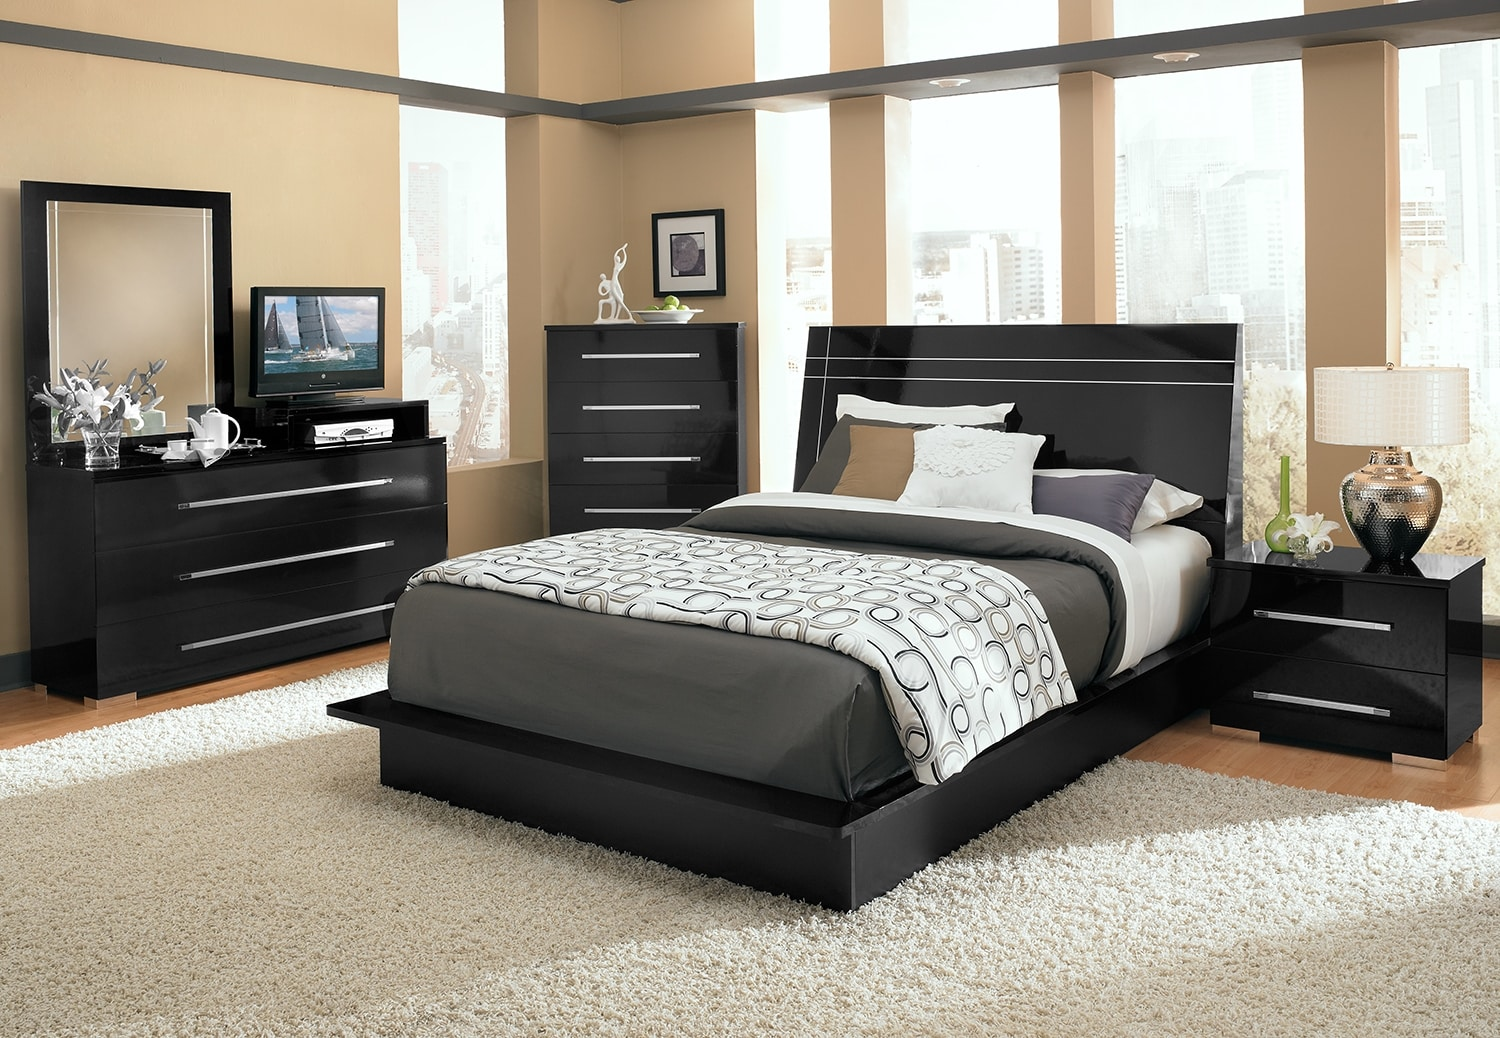 Bedroom Furniture - Dimora Black II 7 Pc. King Bedroom